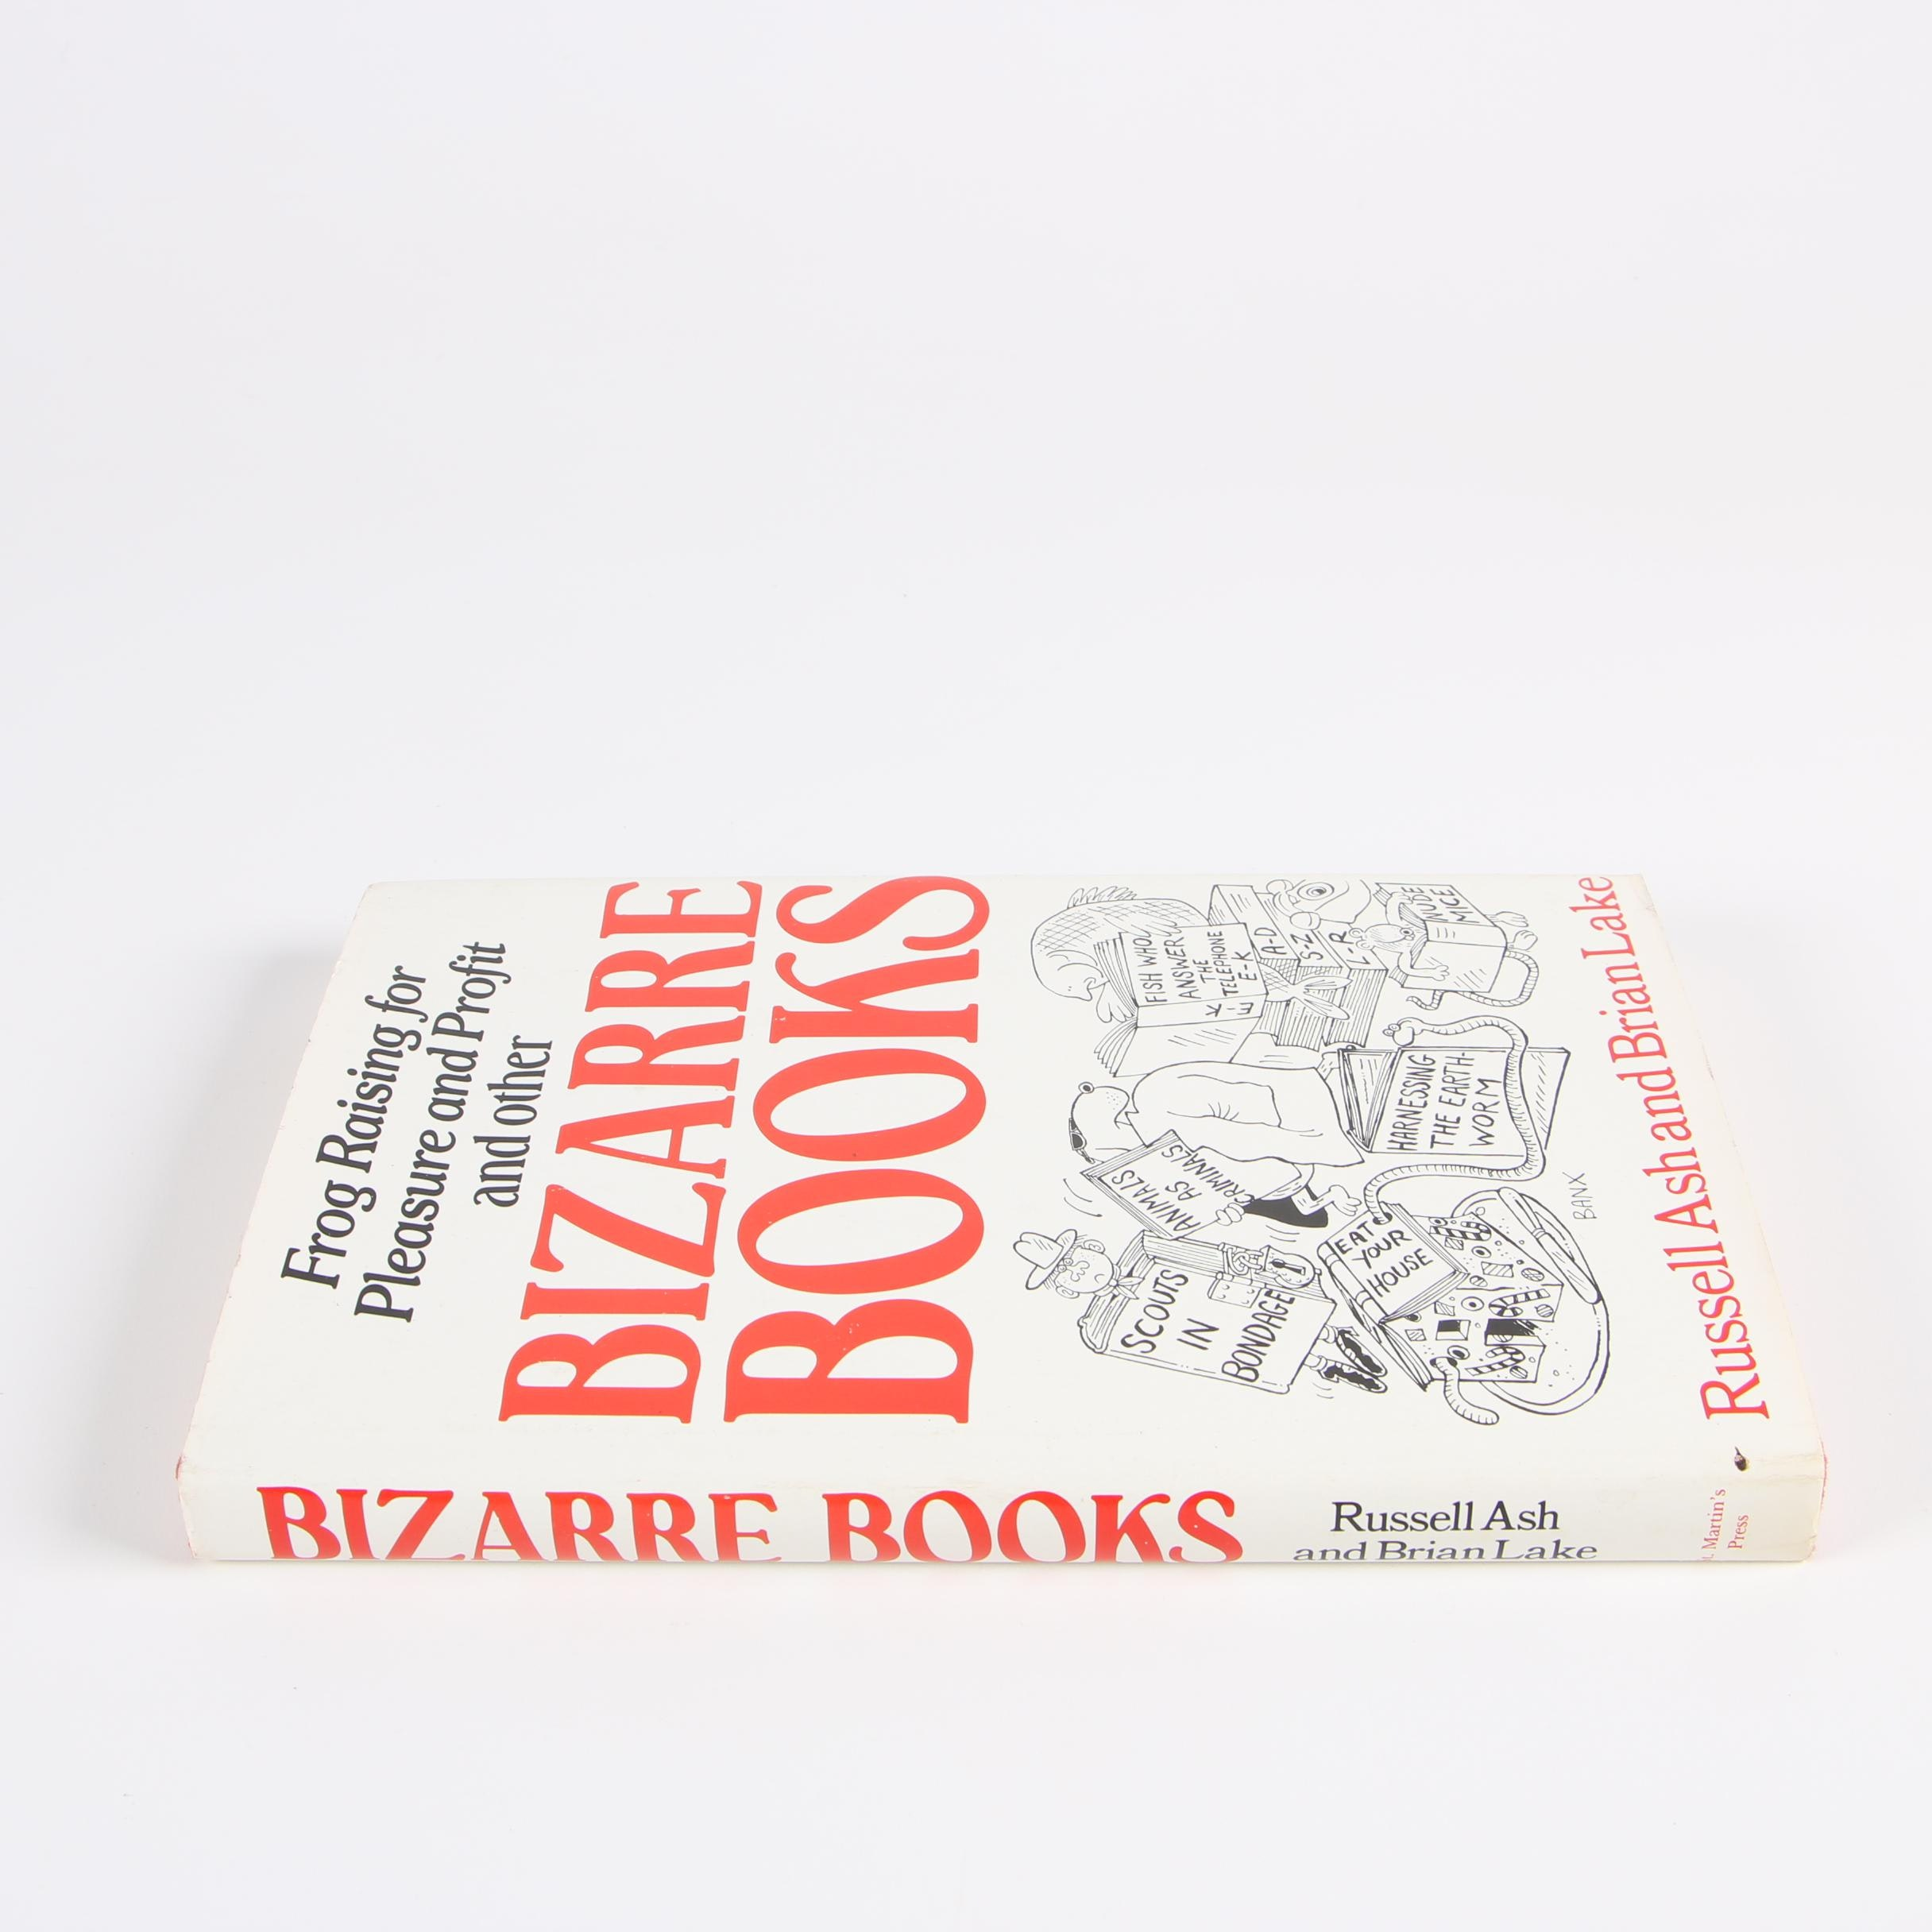 "1985 First US Edition ""Bizarre Books"" by Russell Ash and Brian Lake"